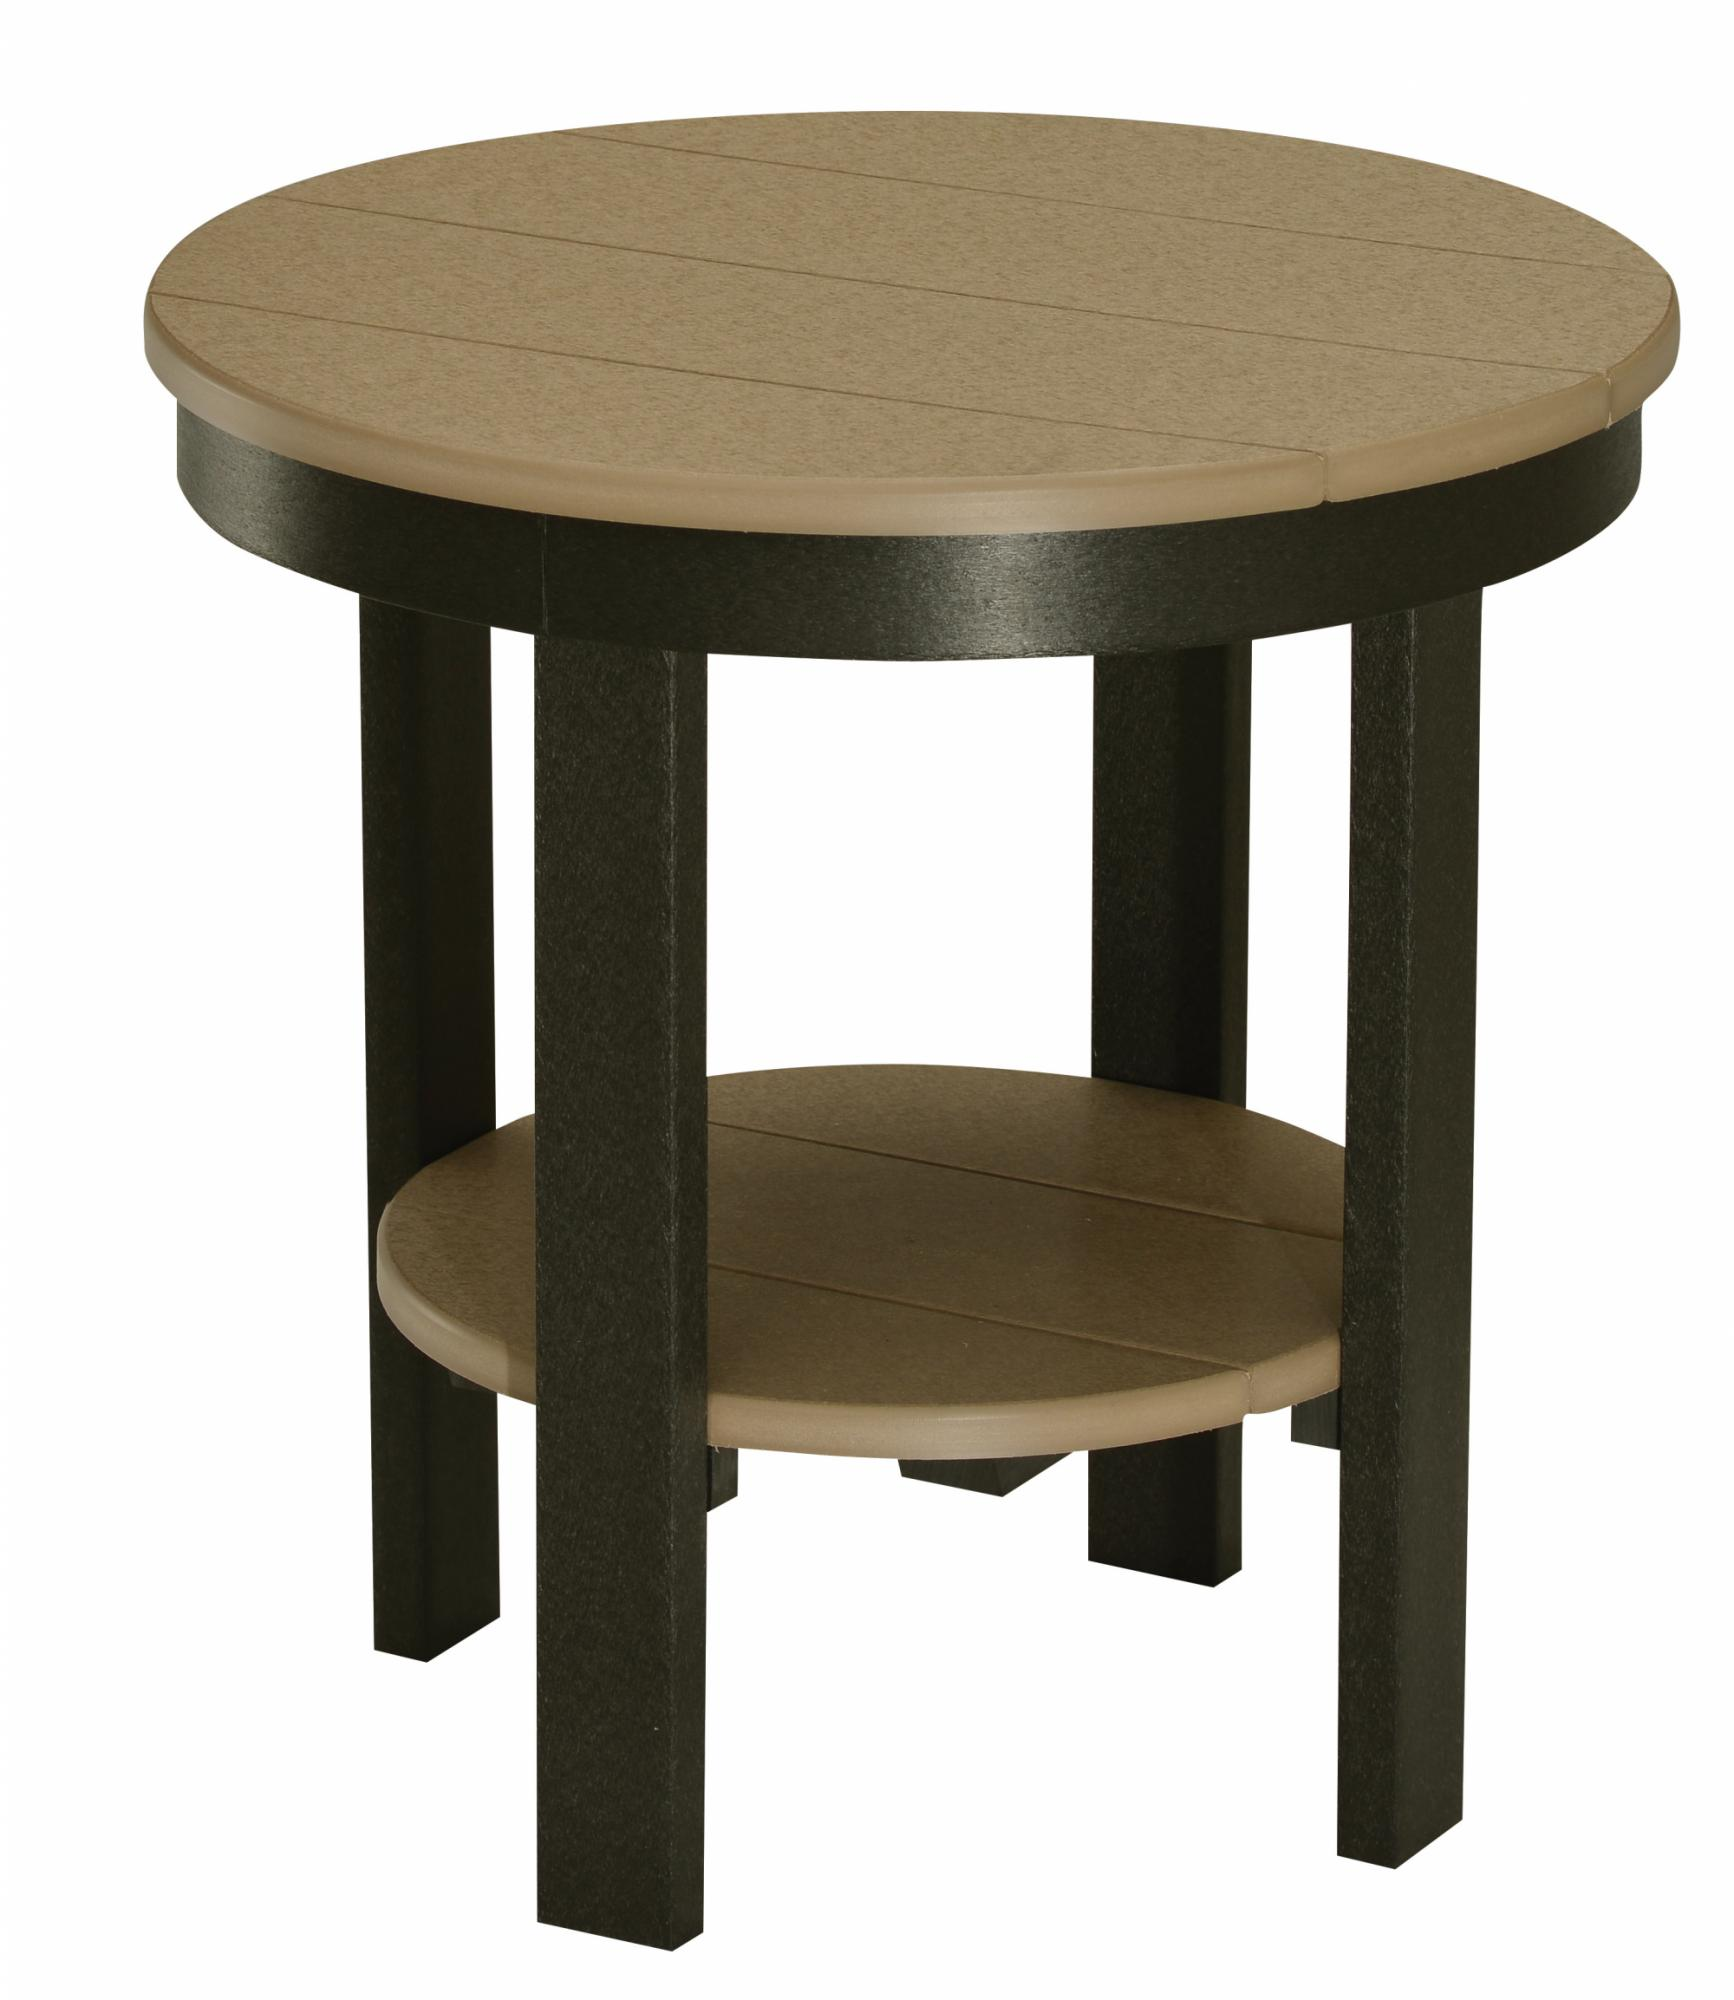 Round End Table (Regular Height)